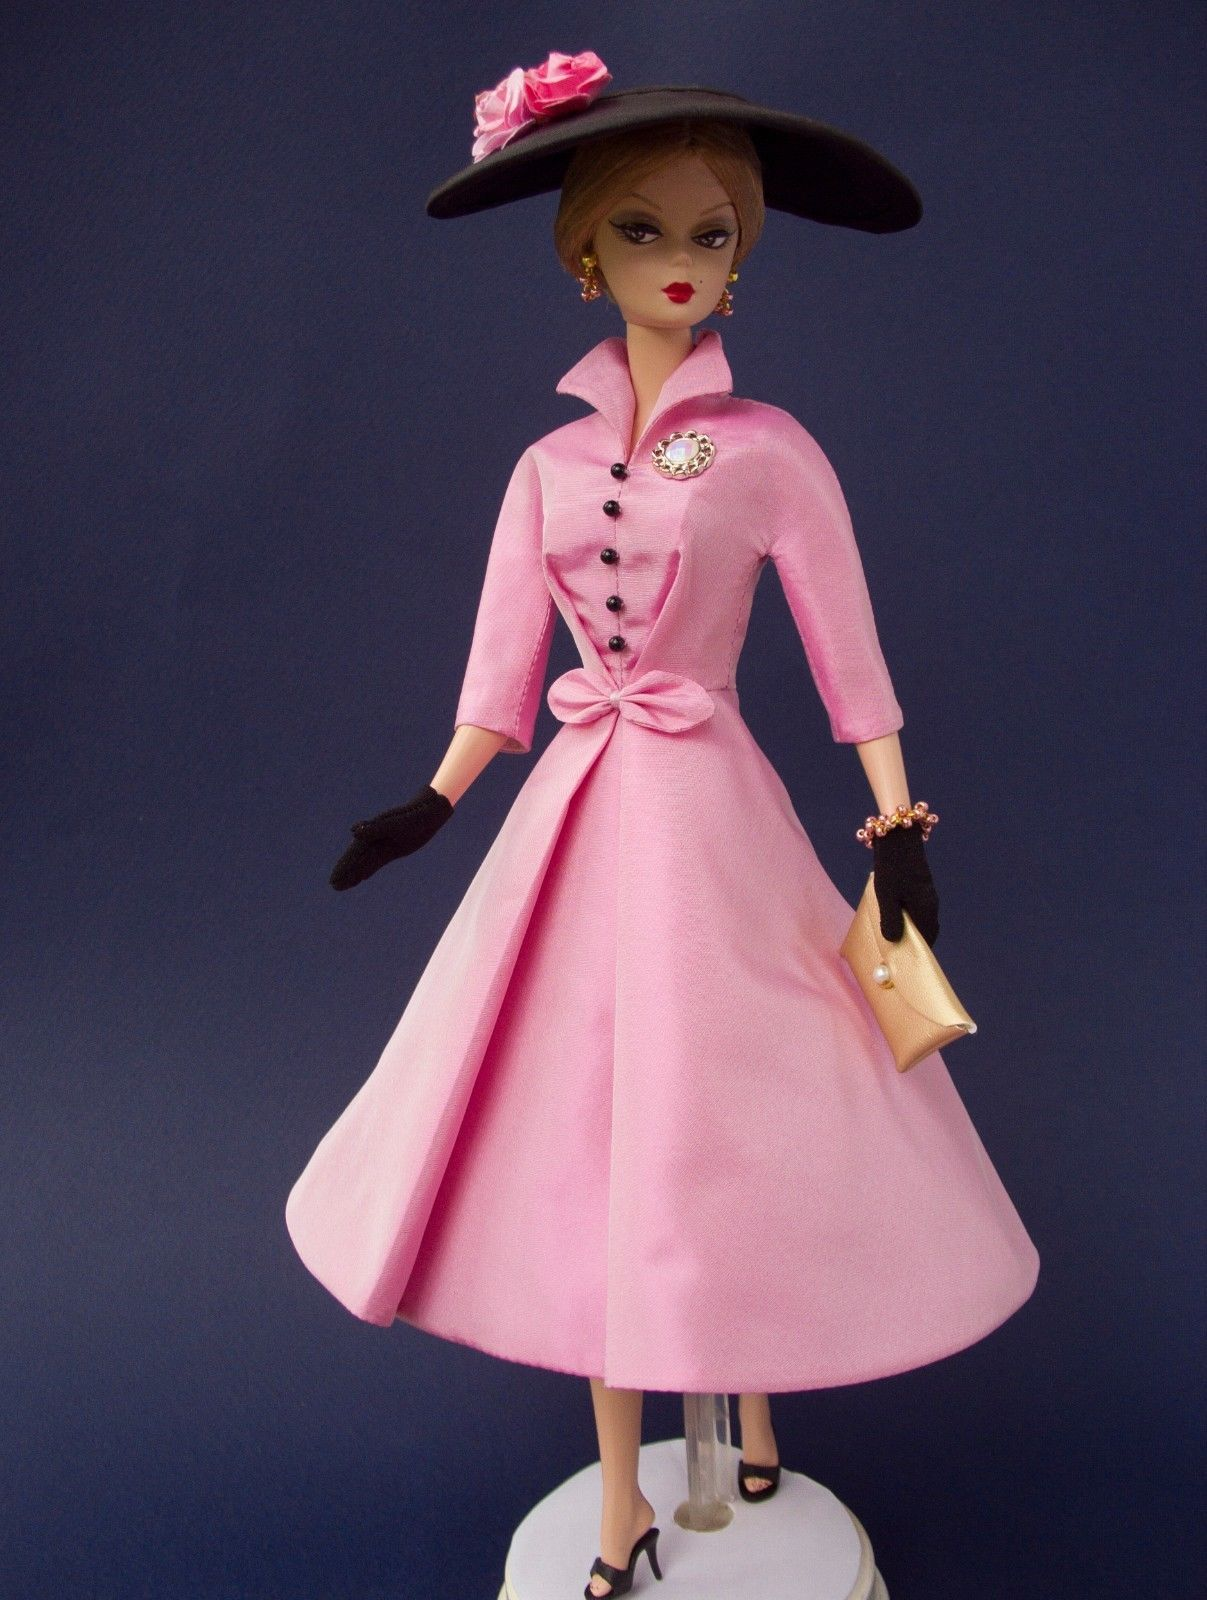 Ooak Outfit Made For Vintage Silkstone Barbie By D B Handmade One Of A Kind Ebay Barbie Pink Dress Barbie Clothes Doll Clothes Barbie